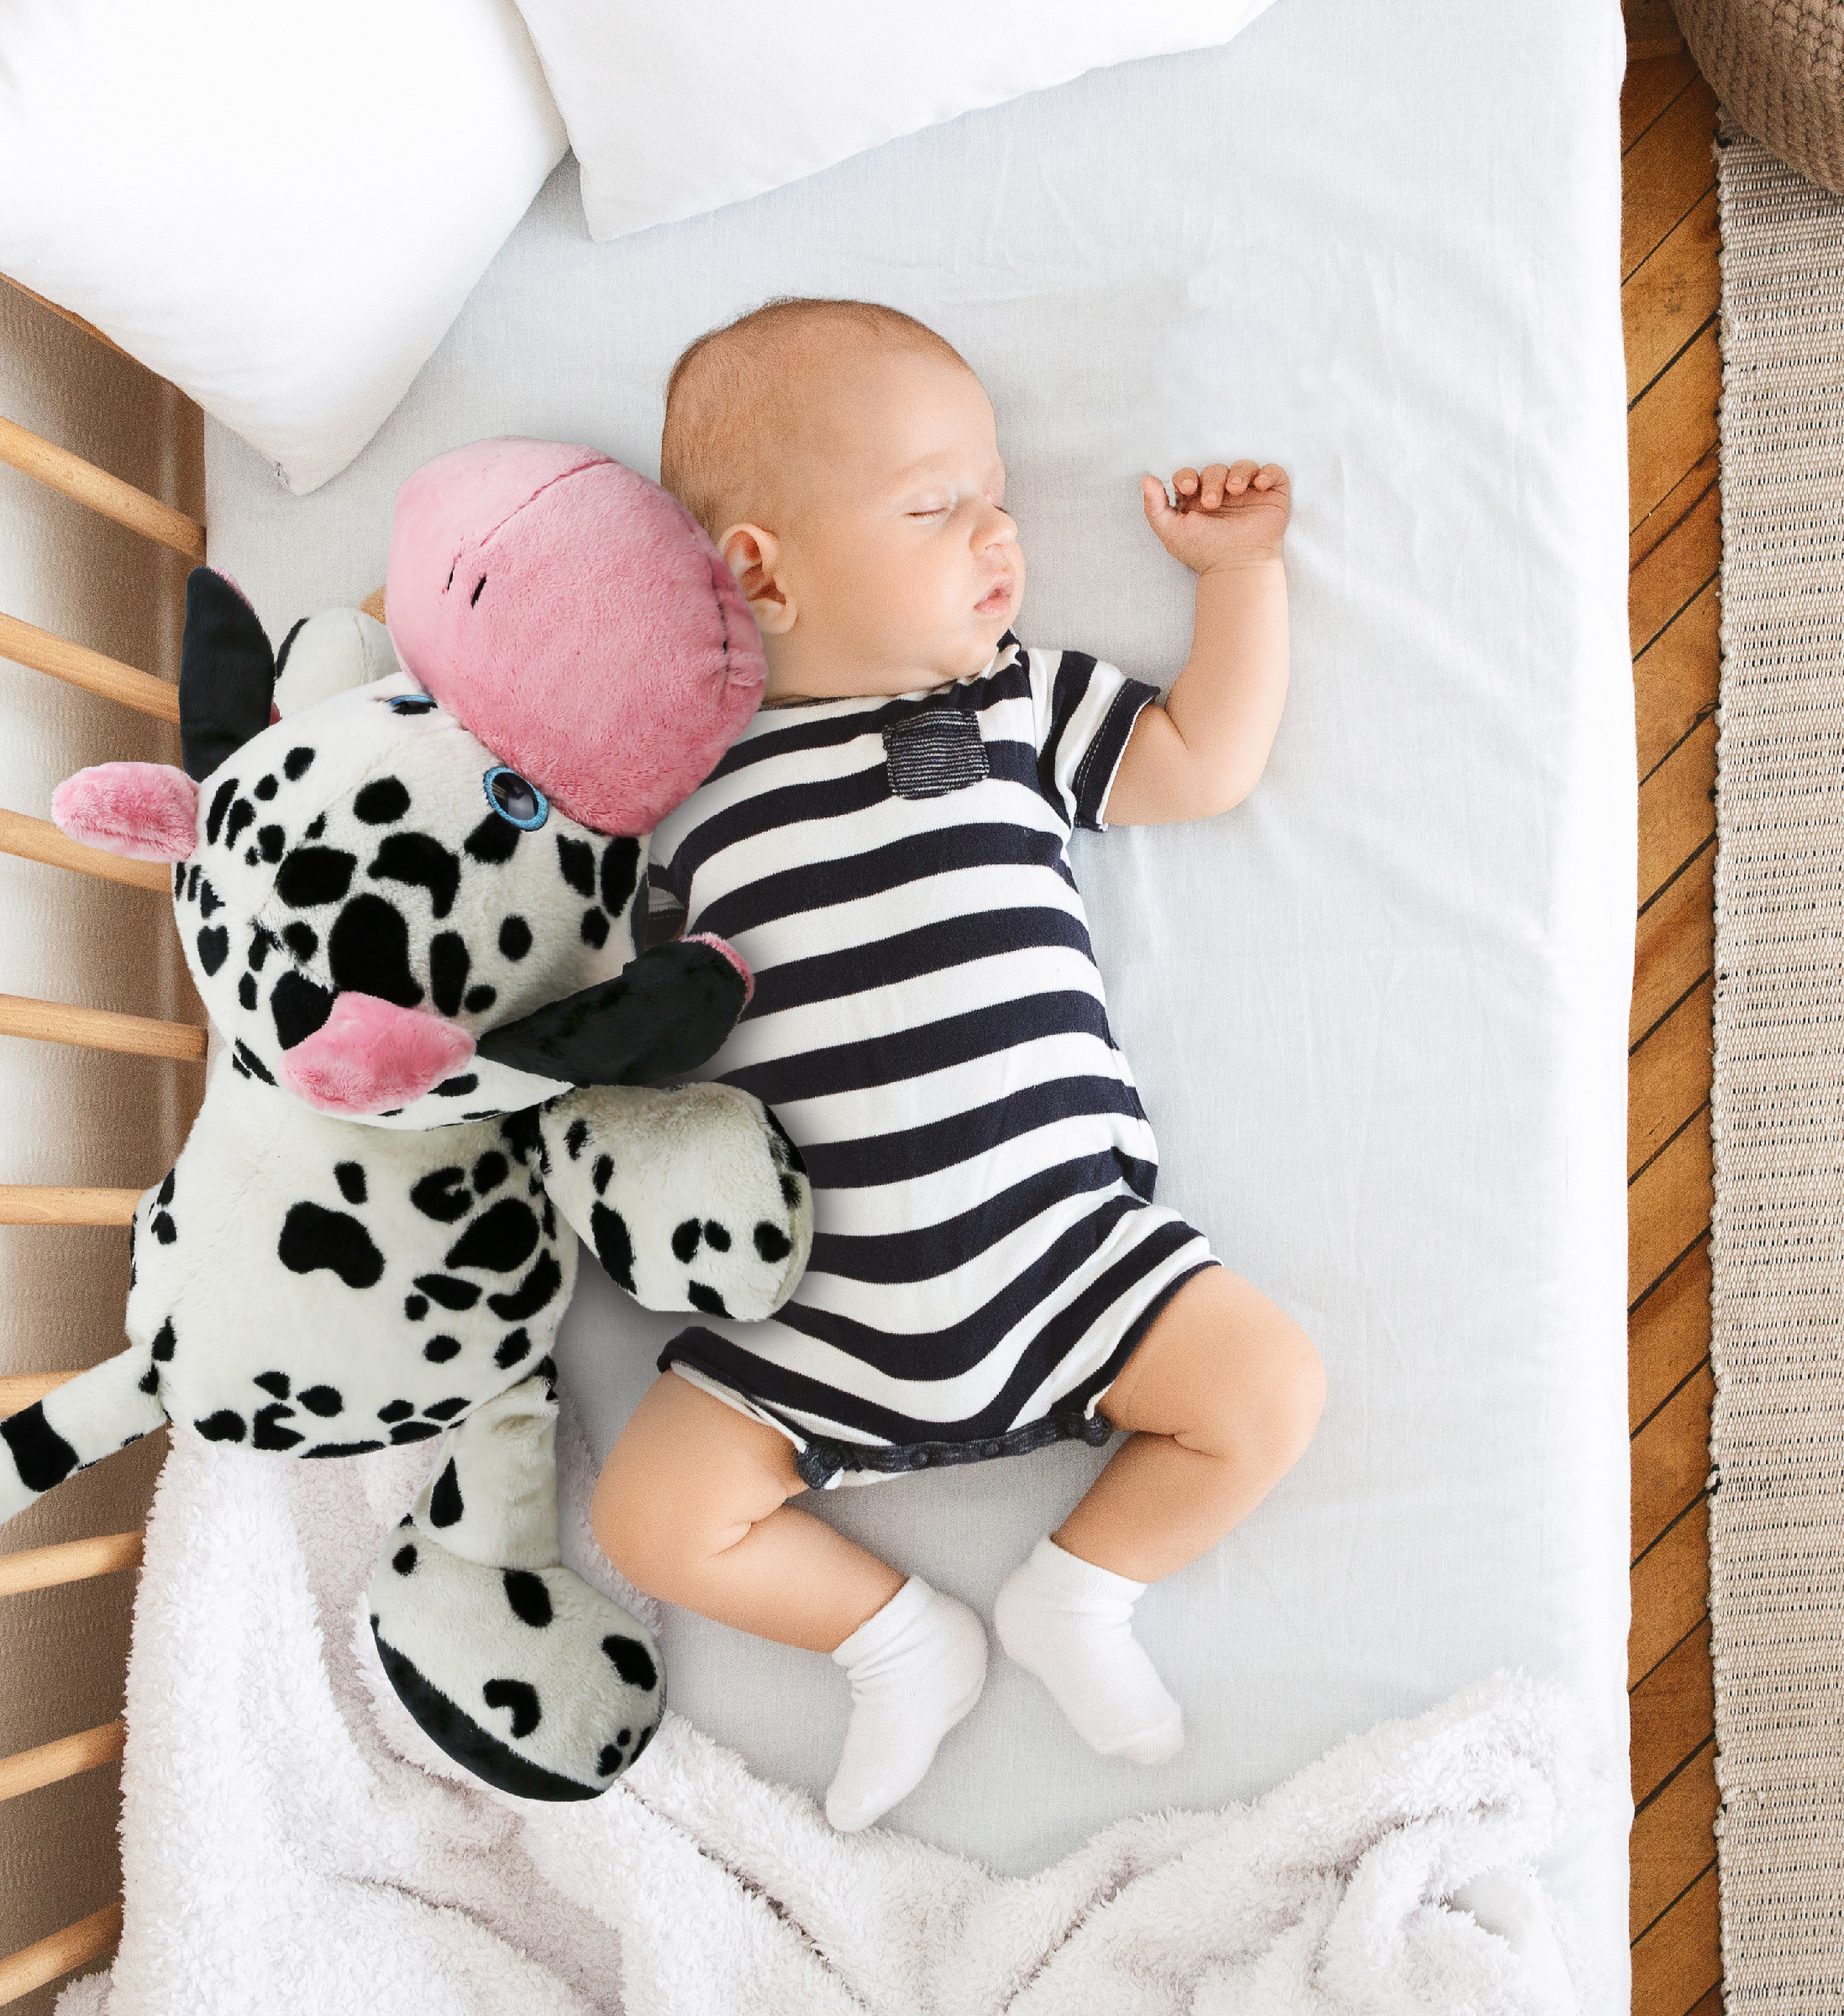 dollibu cow xl stuffed animal pillow 27 inch soft moo cow toy pet animal pillows for kids cute cozy nap buddy floor pillows for kids toddlers